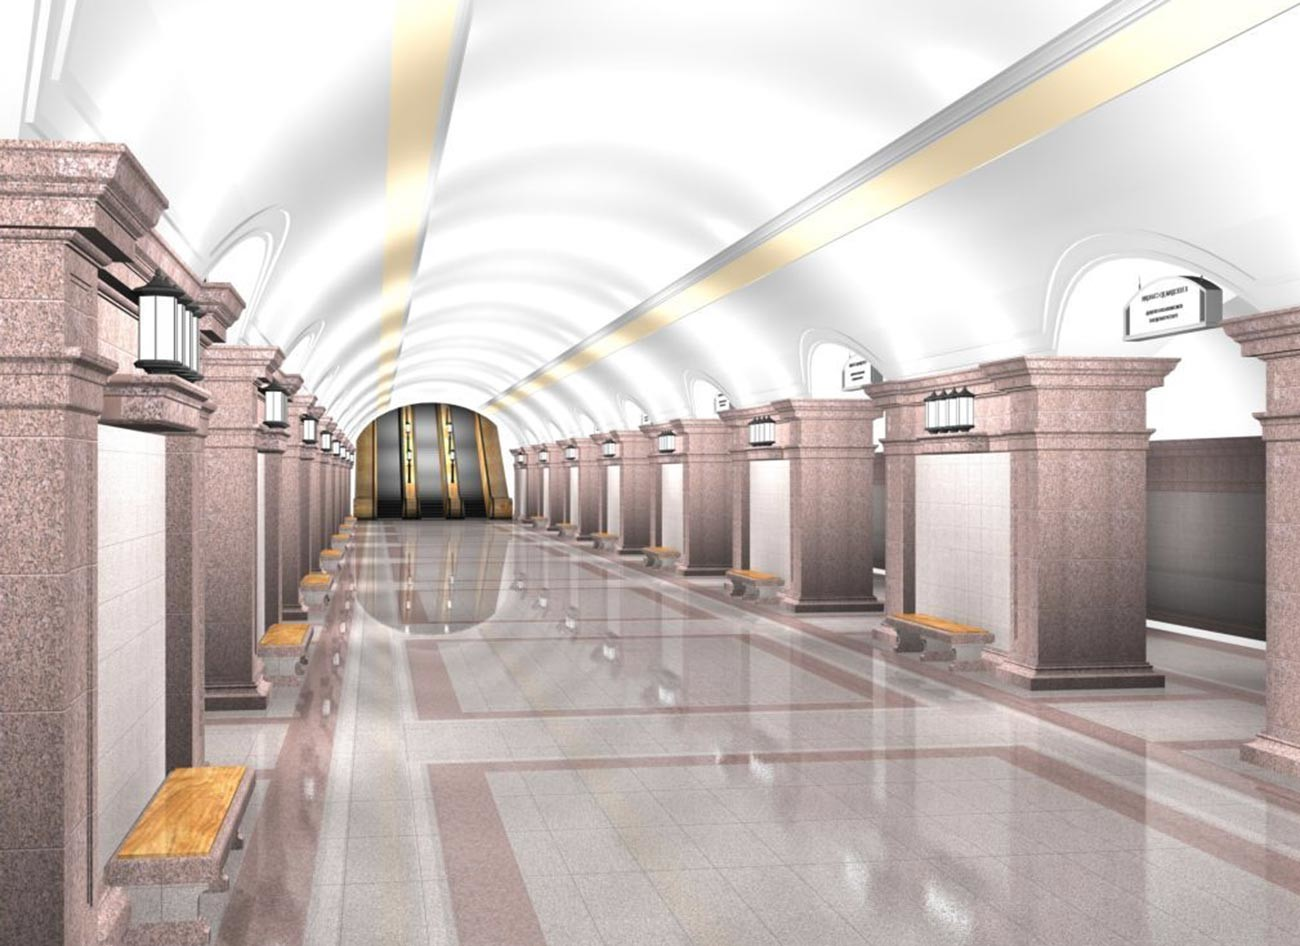 This is how a station in Chelyabinsk metro could look like.